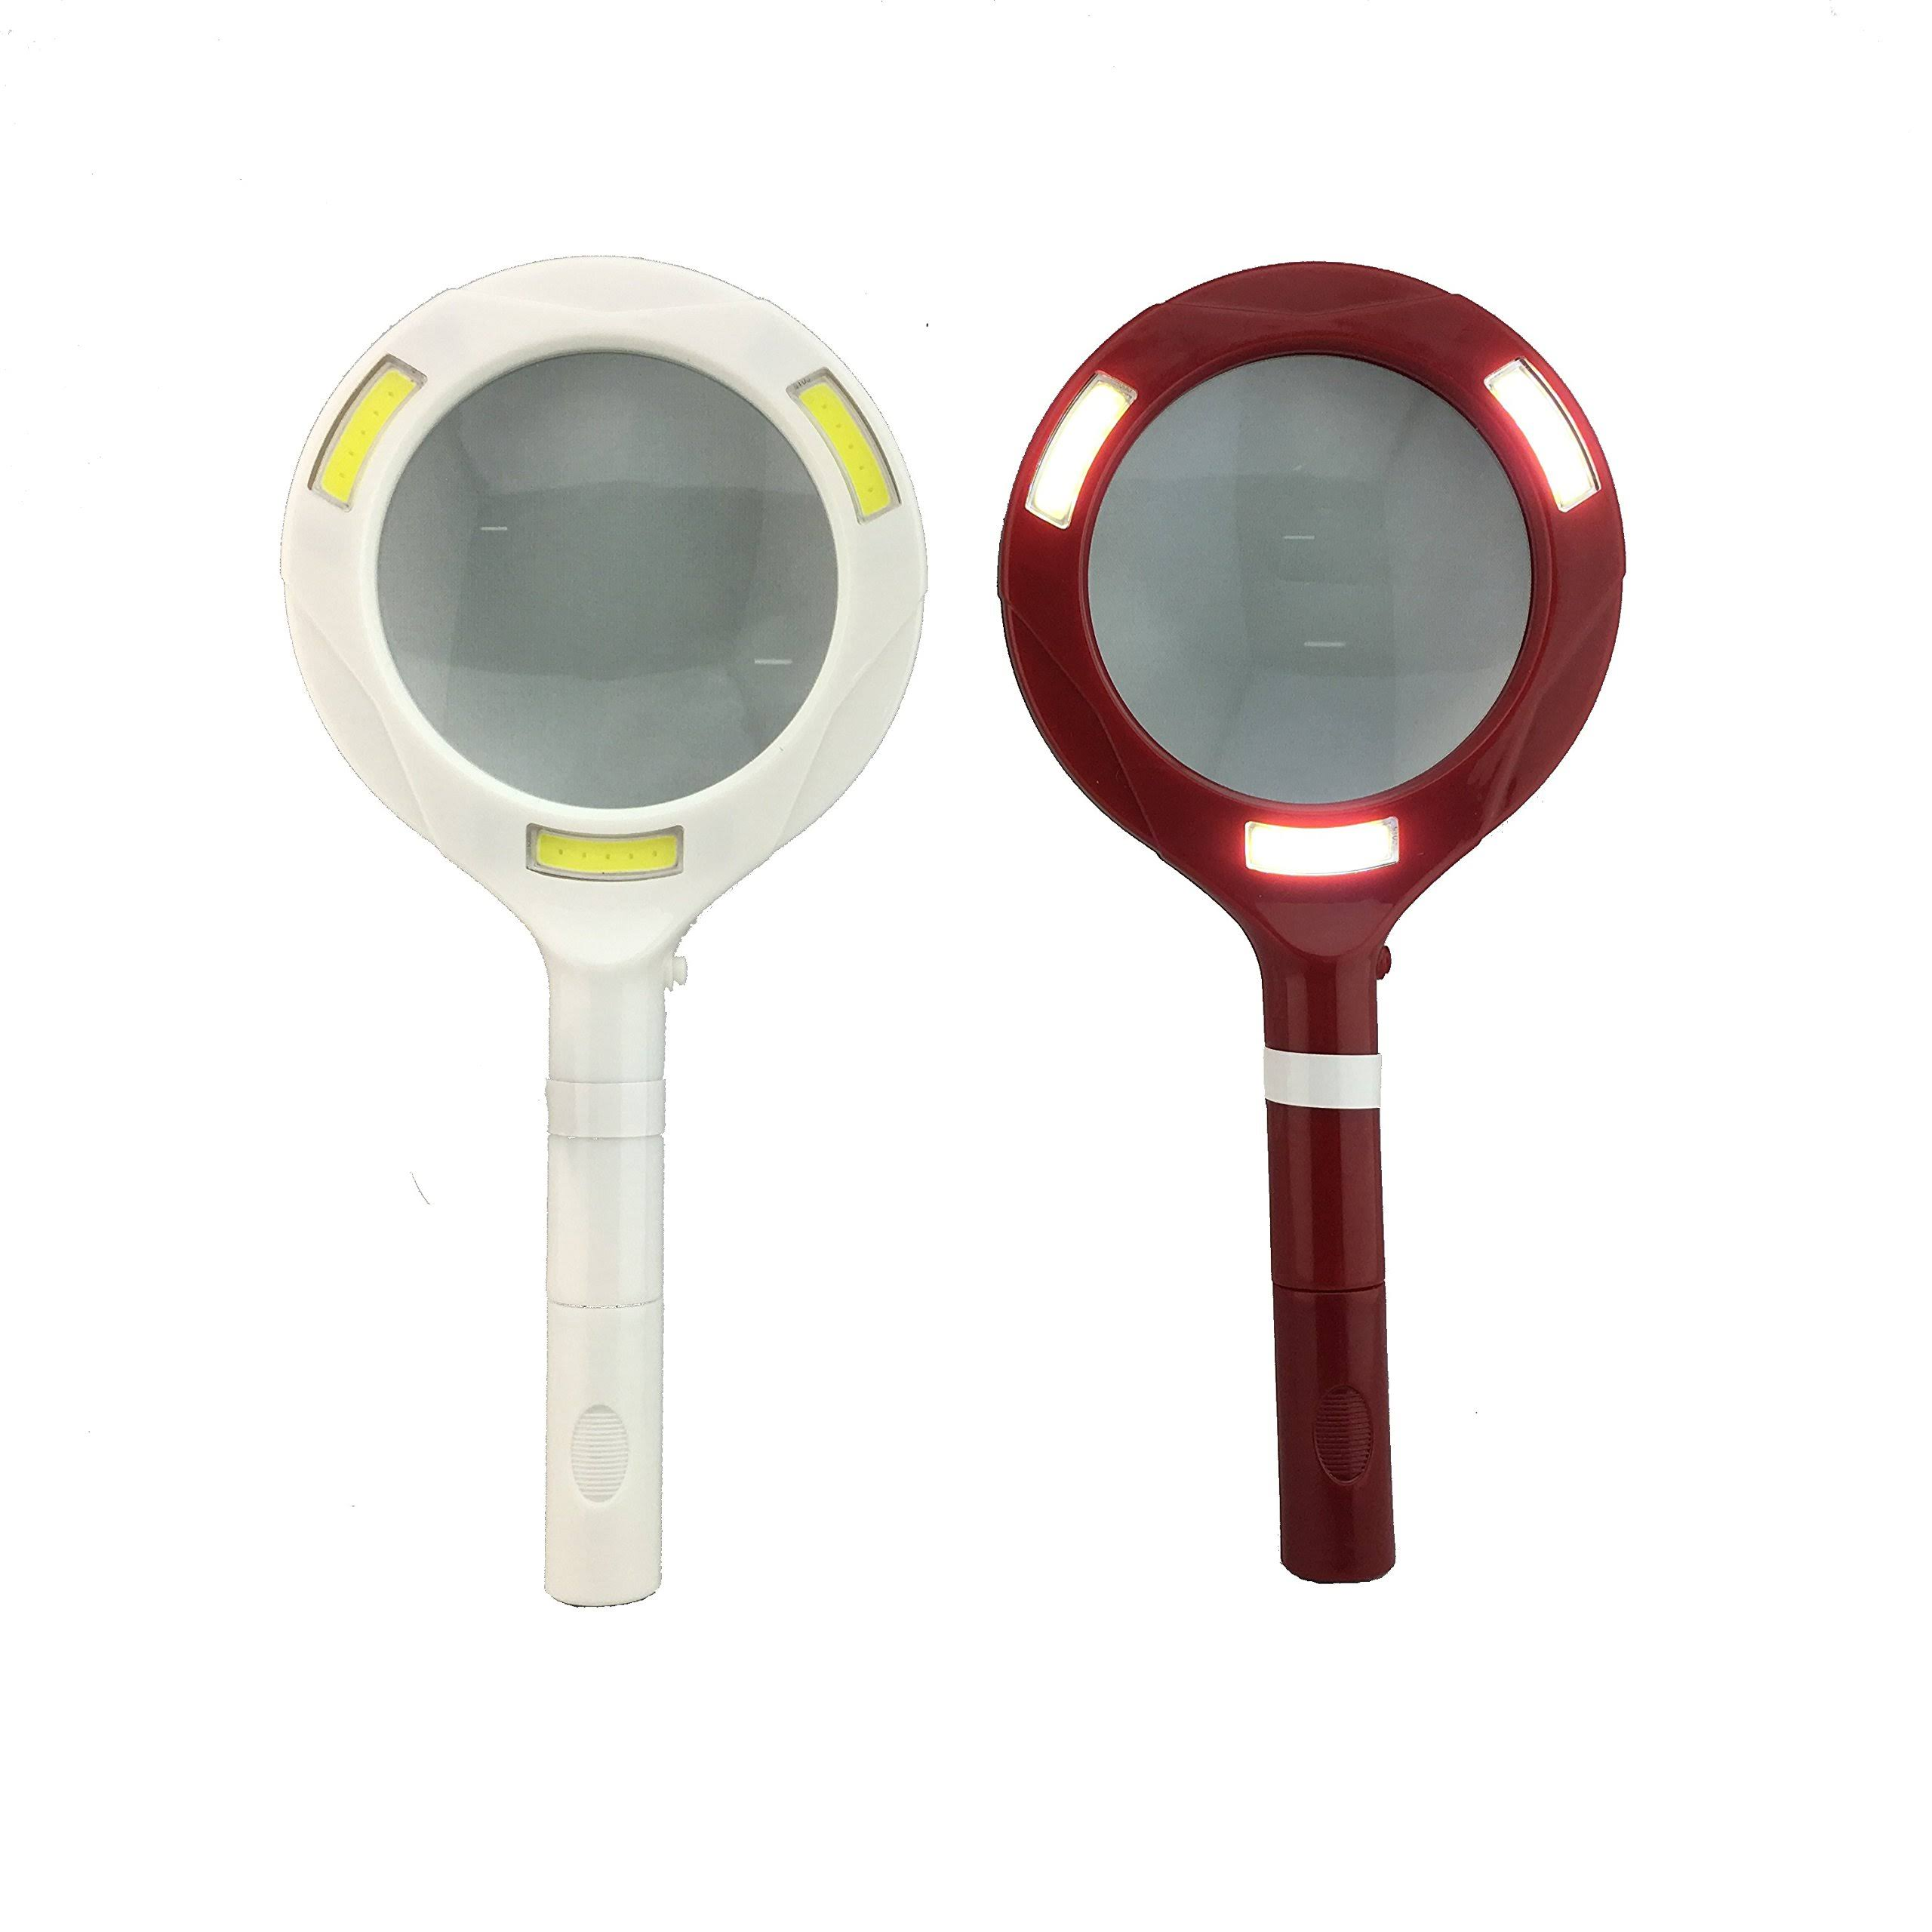 Blazing Ledz 702708 COB LED Magnifying Glass with Lights